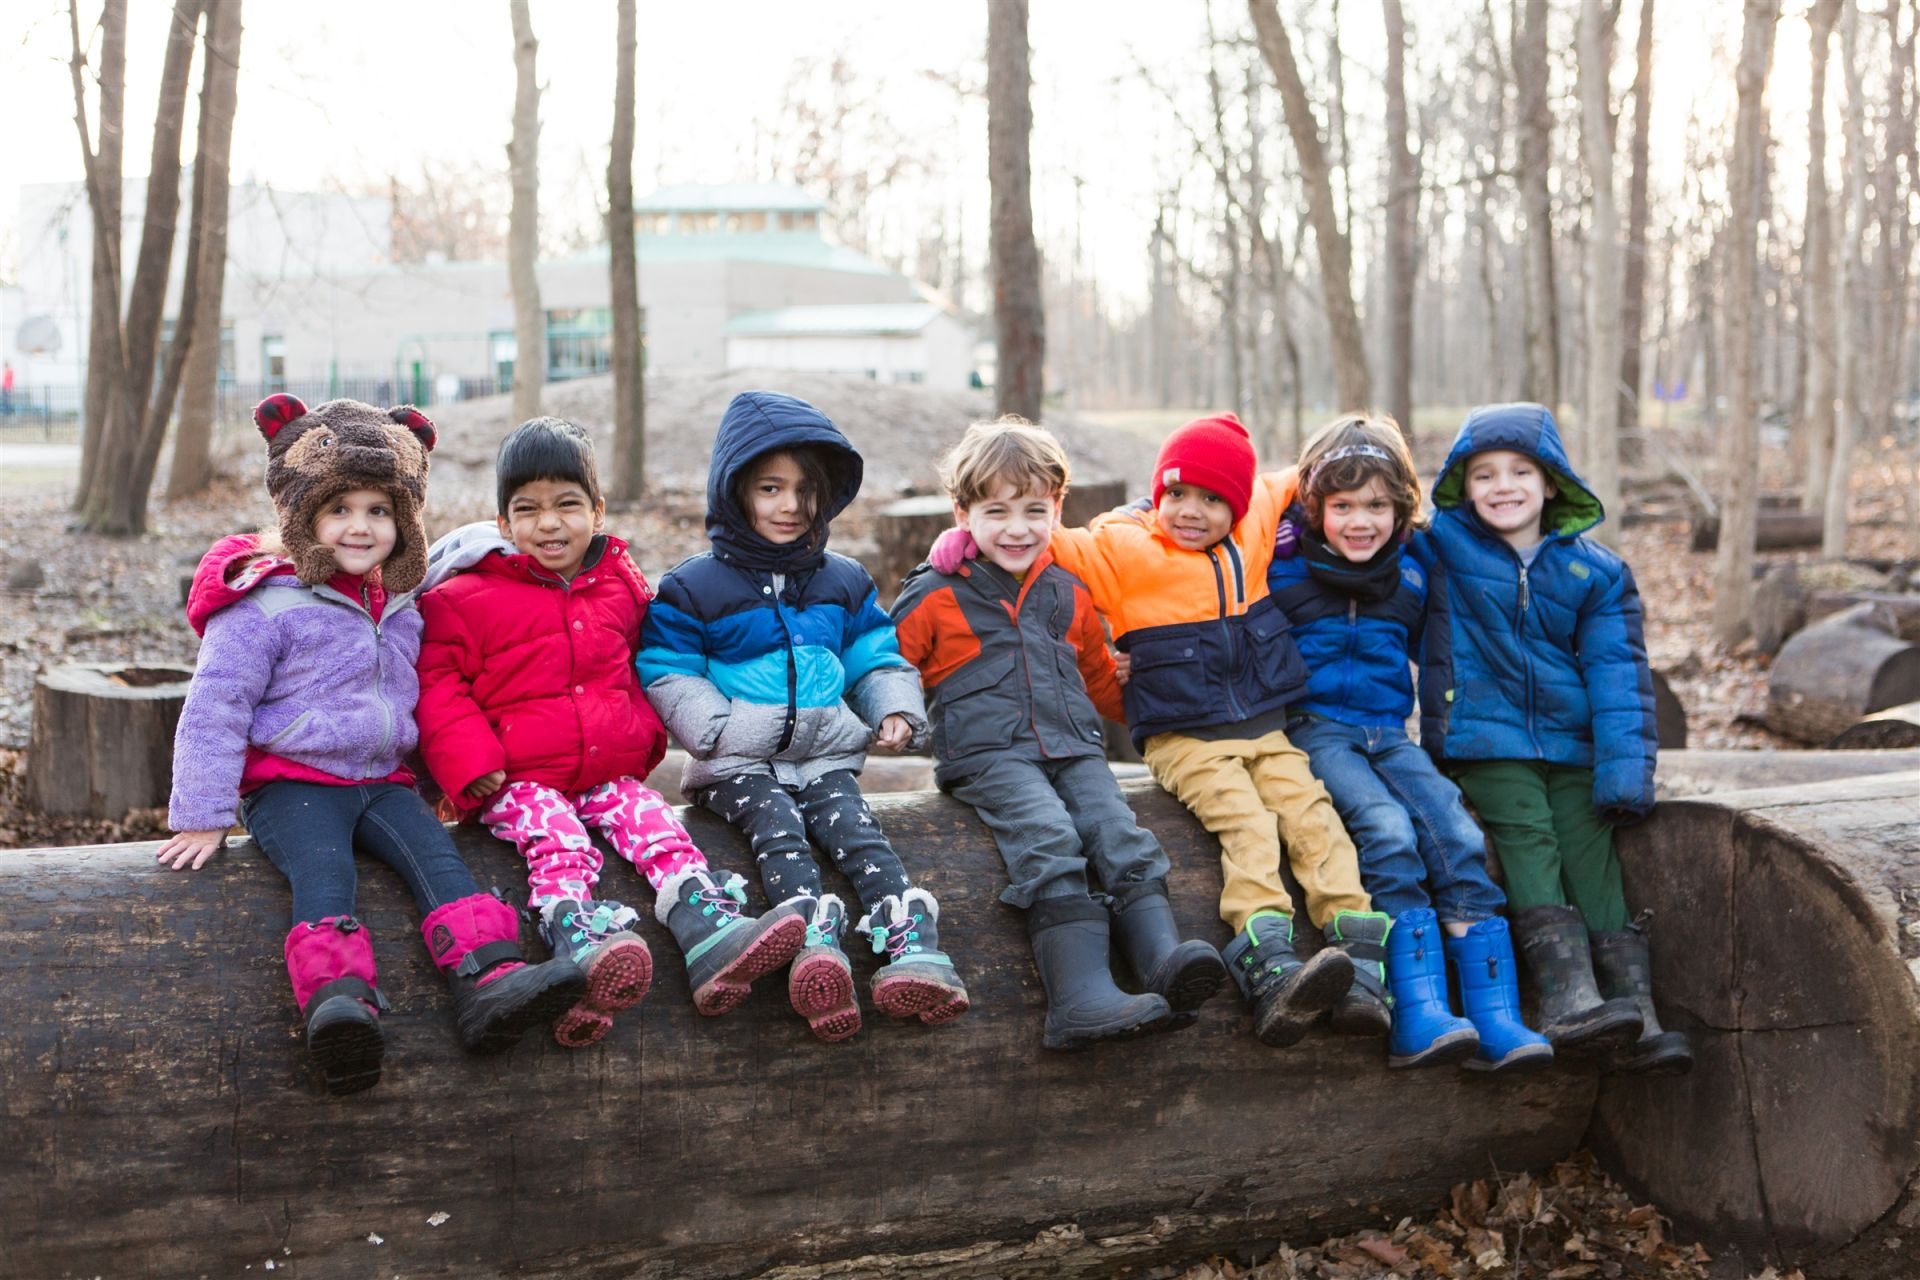 It was wonderful seeing all of these kiddos help their friend climb up on the log. Compassionate preschoolers!